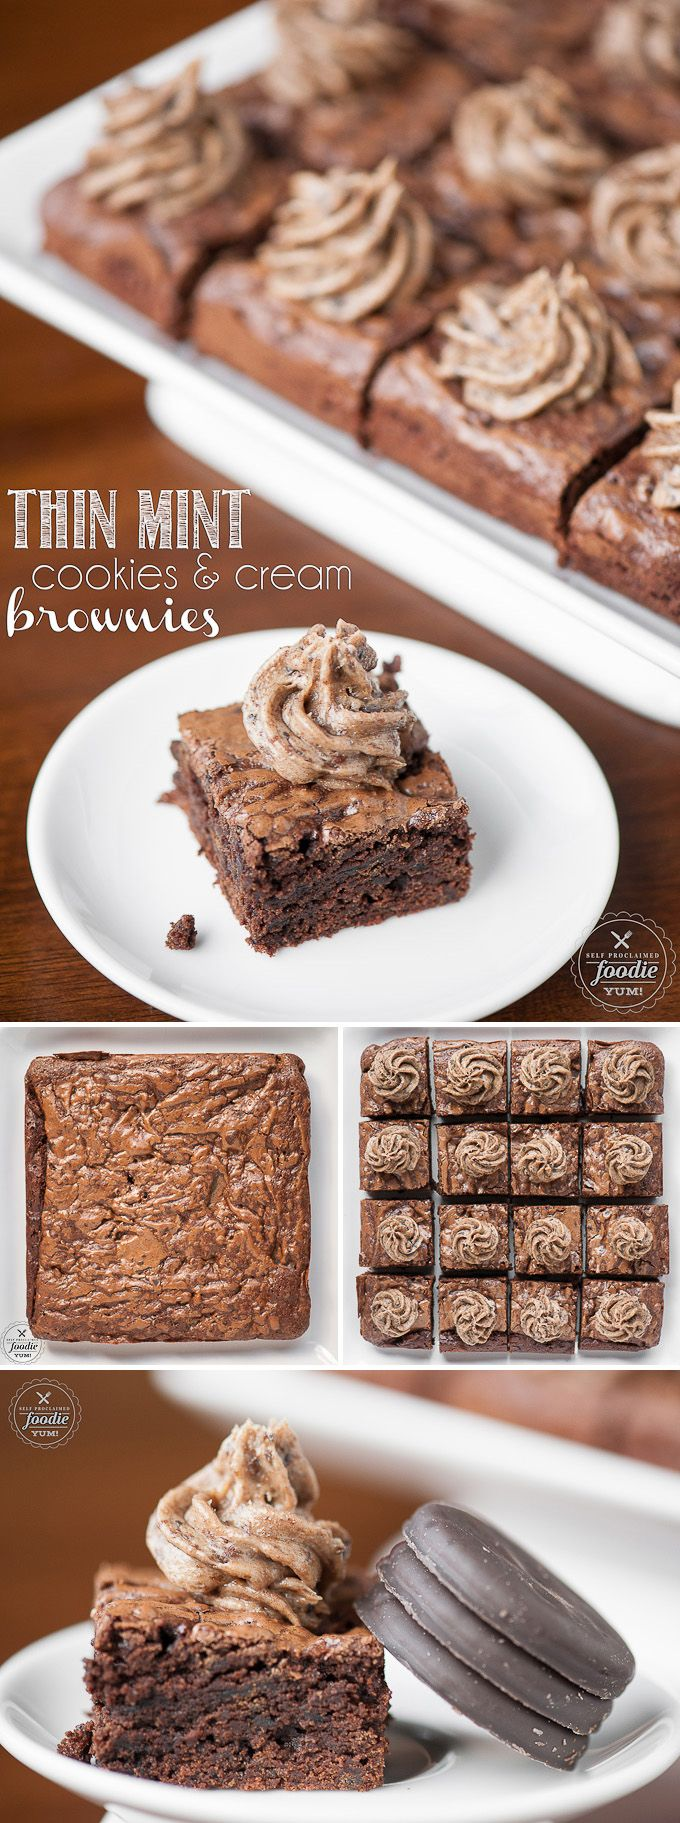 Take your love of Girl Scout Cookies to the next level by transforming them into Thin Mint Cookies & Cream Brownies, also known as the ultimate dessert.